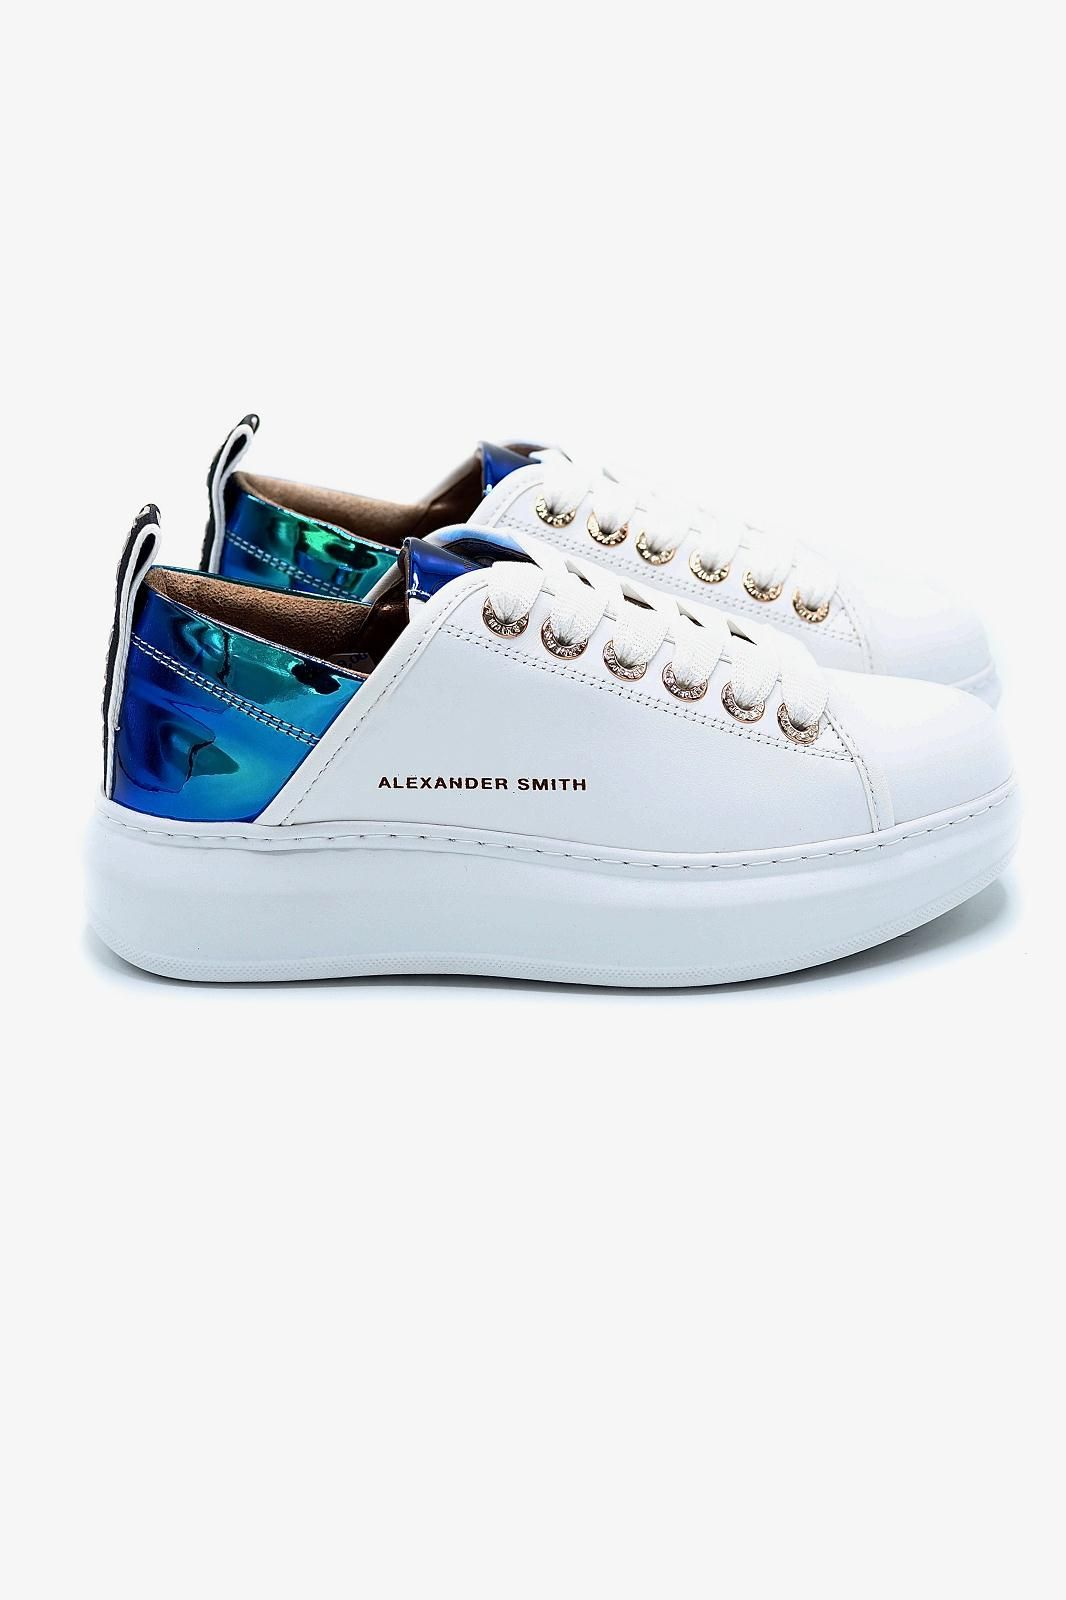 Alexander Smith basket bas Blanc femmes (Alex-Semelle Alex Mc - 102111 Basket blanc contrefort) - Marine | Much more than shoes